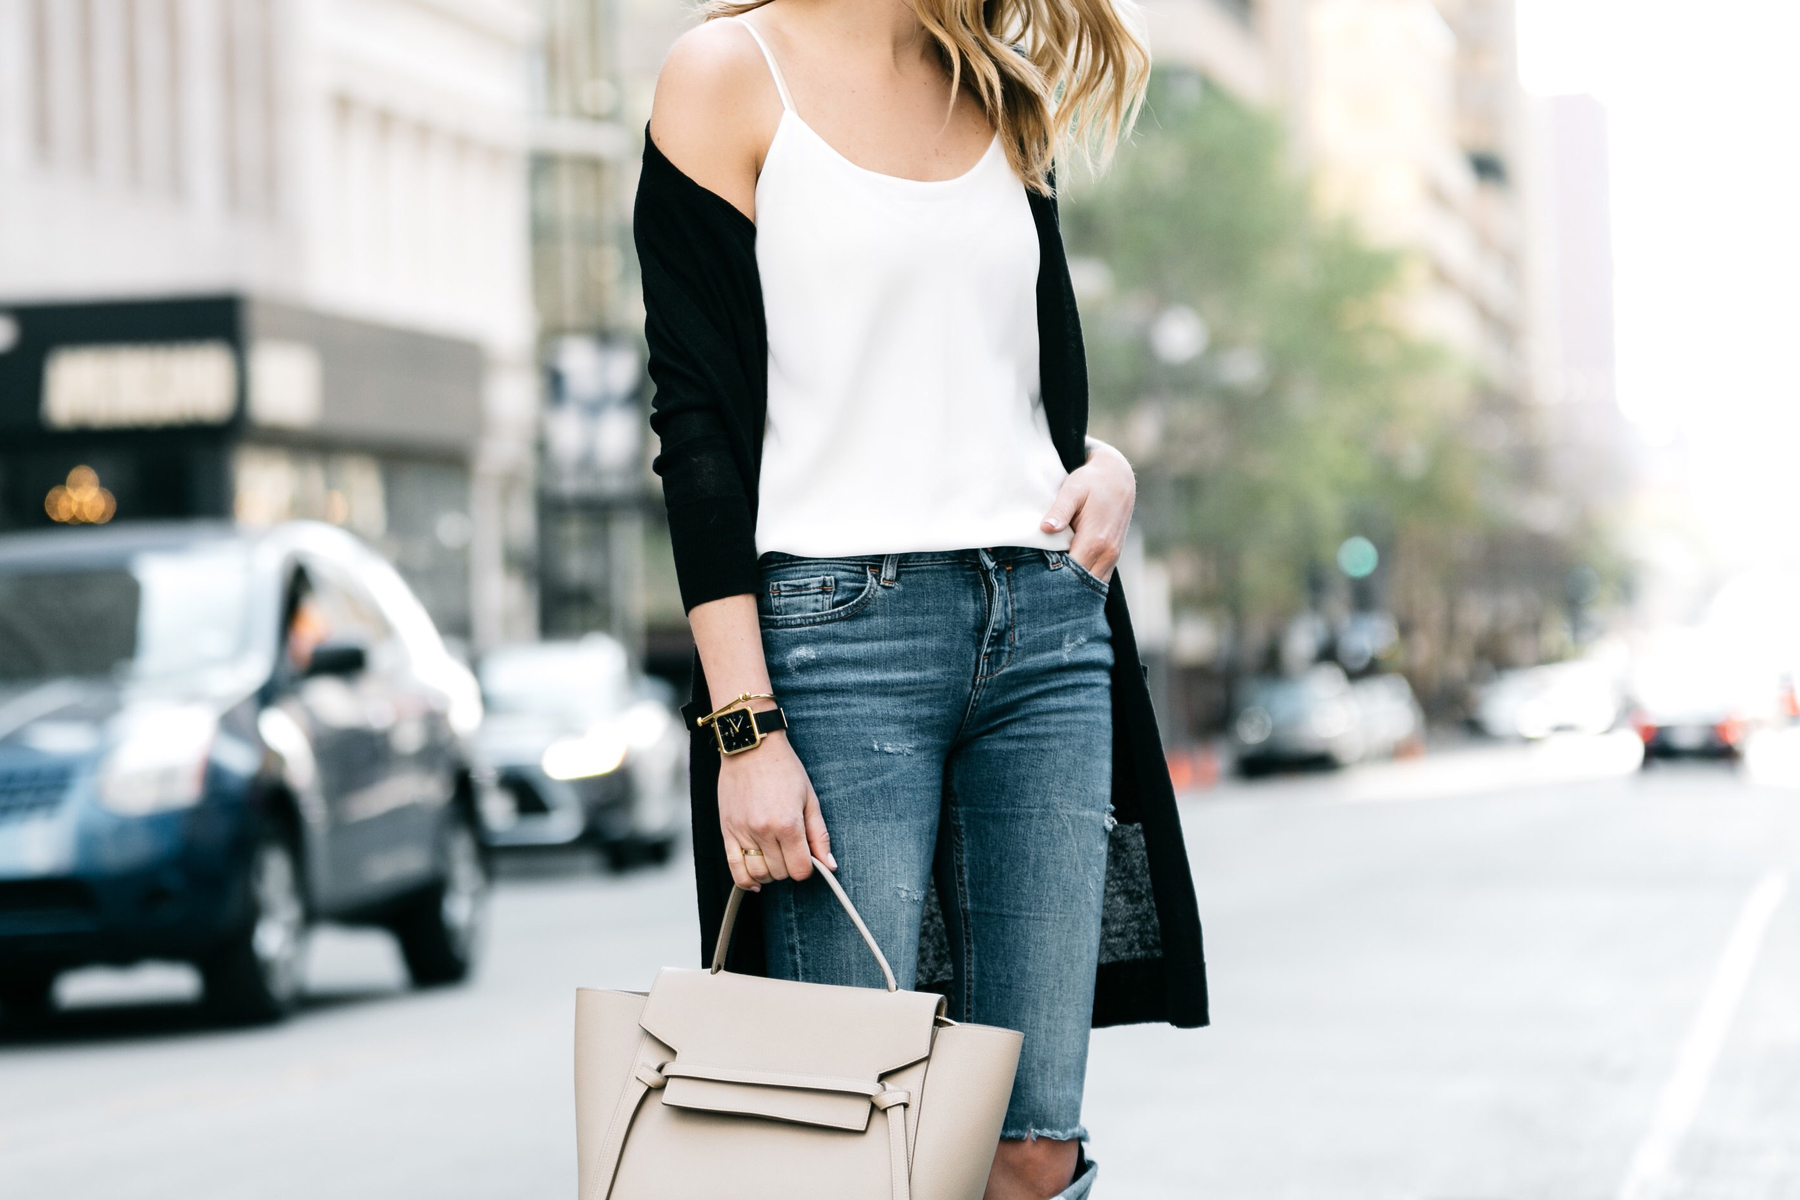 Fashion Jackson, Dallas Blogger, Fashion Blogger, Street Style, Nordstrom Long Black Cardigan, Club Monaco White Cami, Zara Denim Ripped Skinny Jeans, Celine Belt Bag